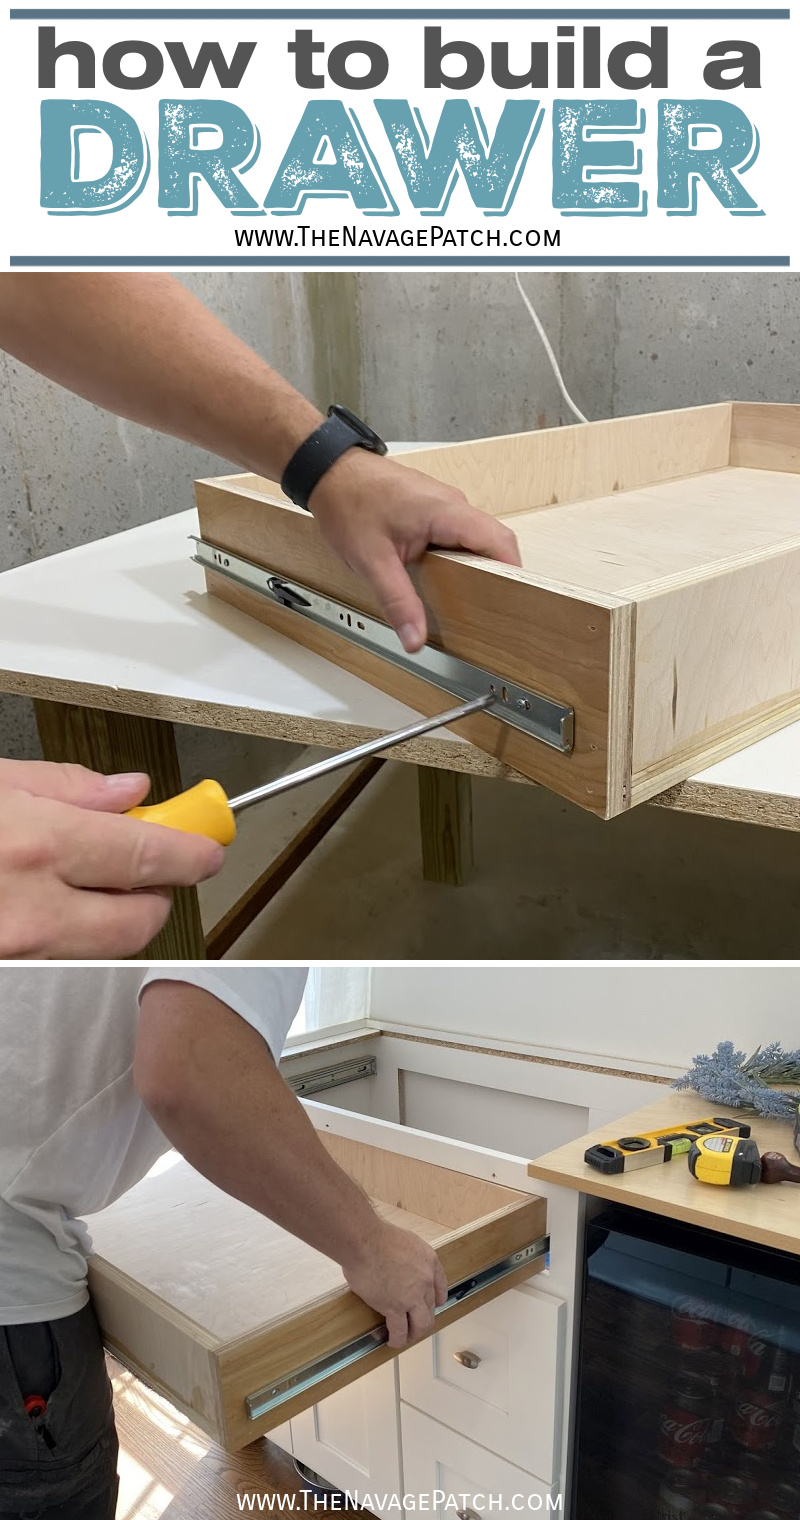 How to Make a Drawer and Vanity Repurpose - TheNavagePatch.com